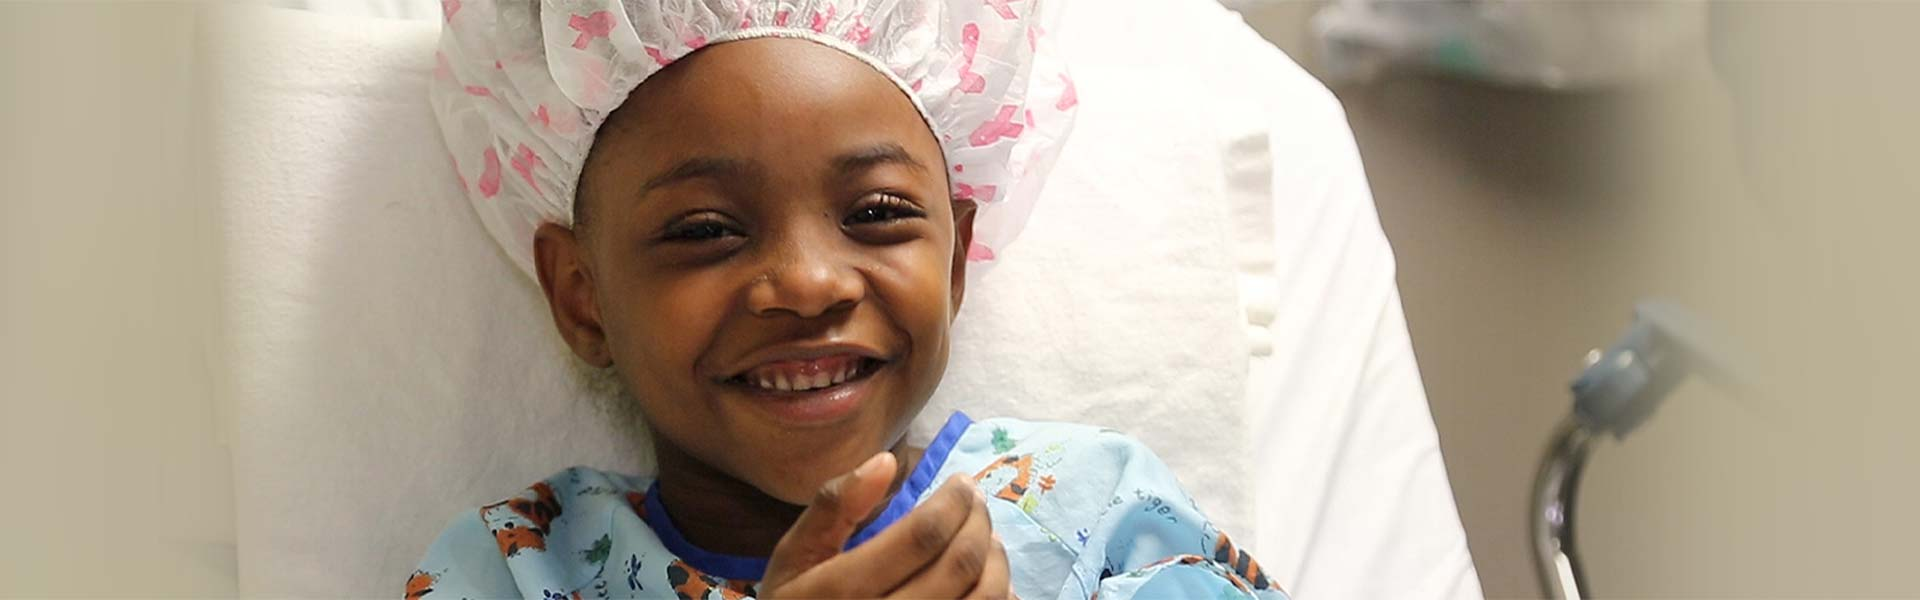 Little boy in surgical garb smiling